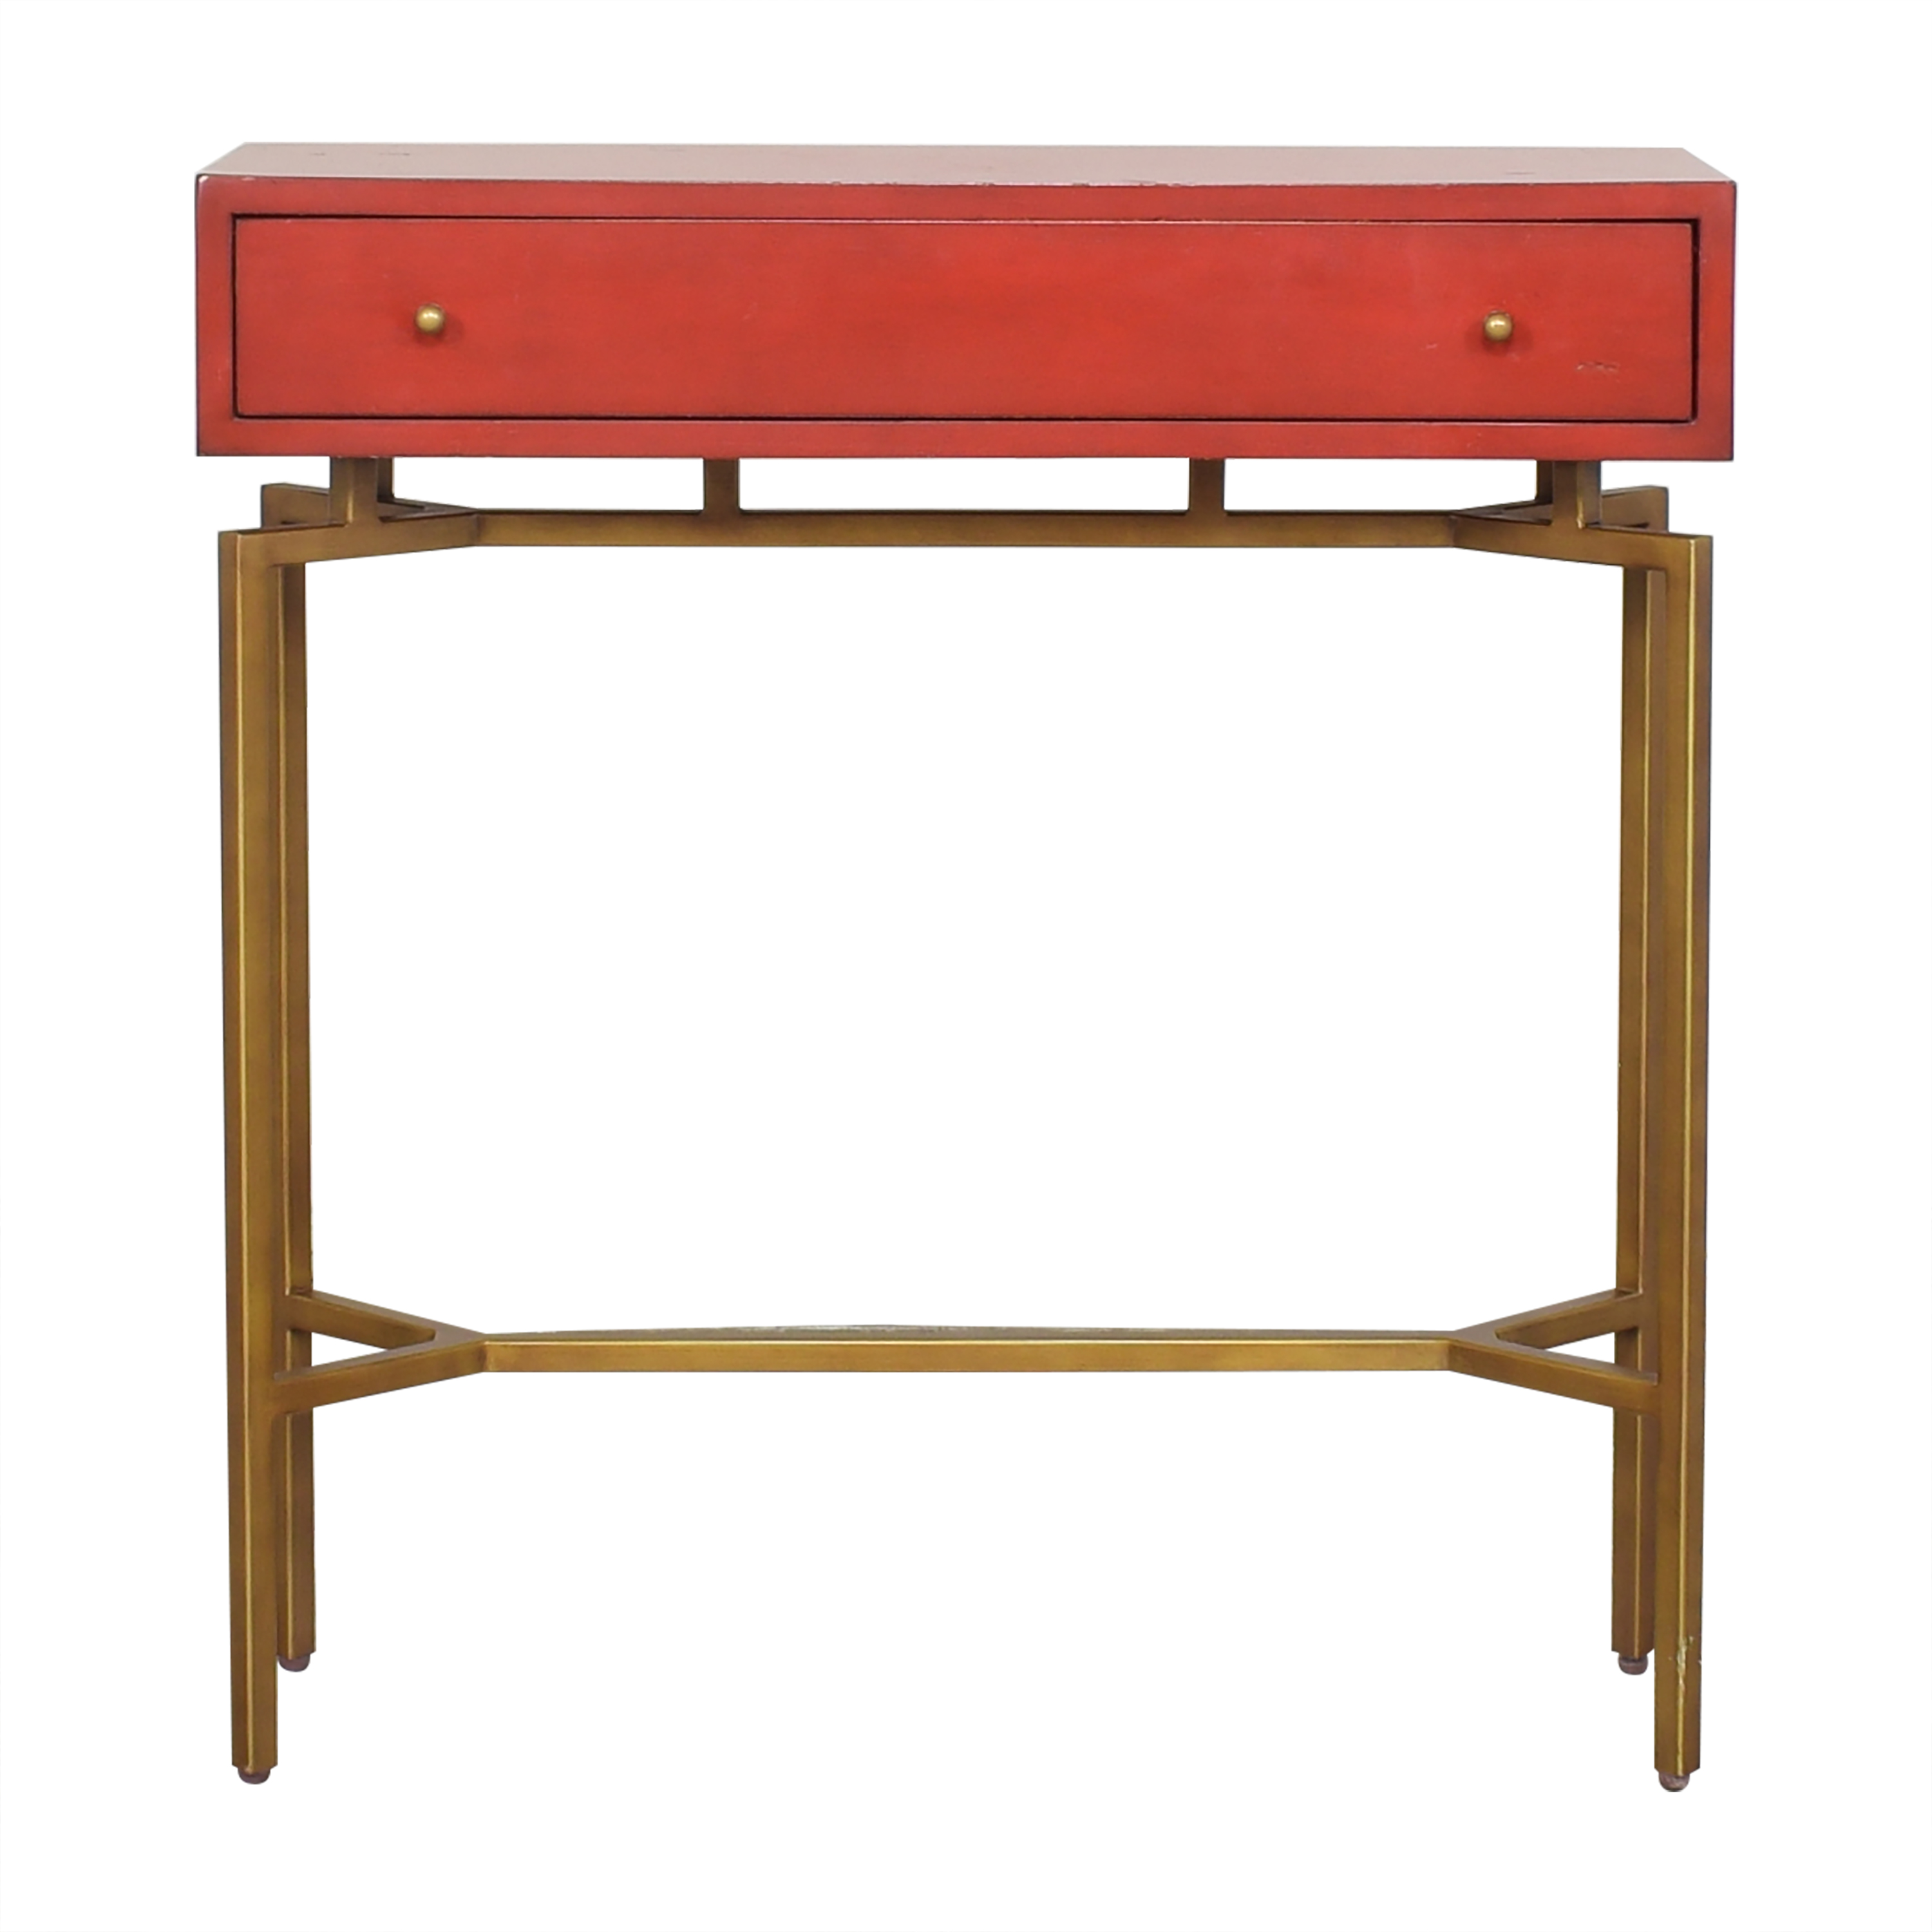 Mitchell Gold + Bob Williams Mitchell Gold + Bob Williams Ming Console Table coupon